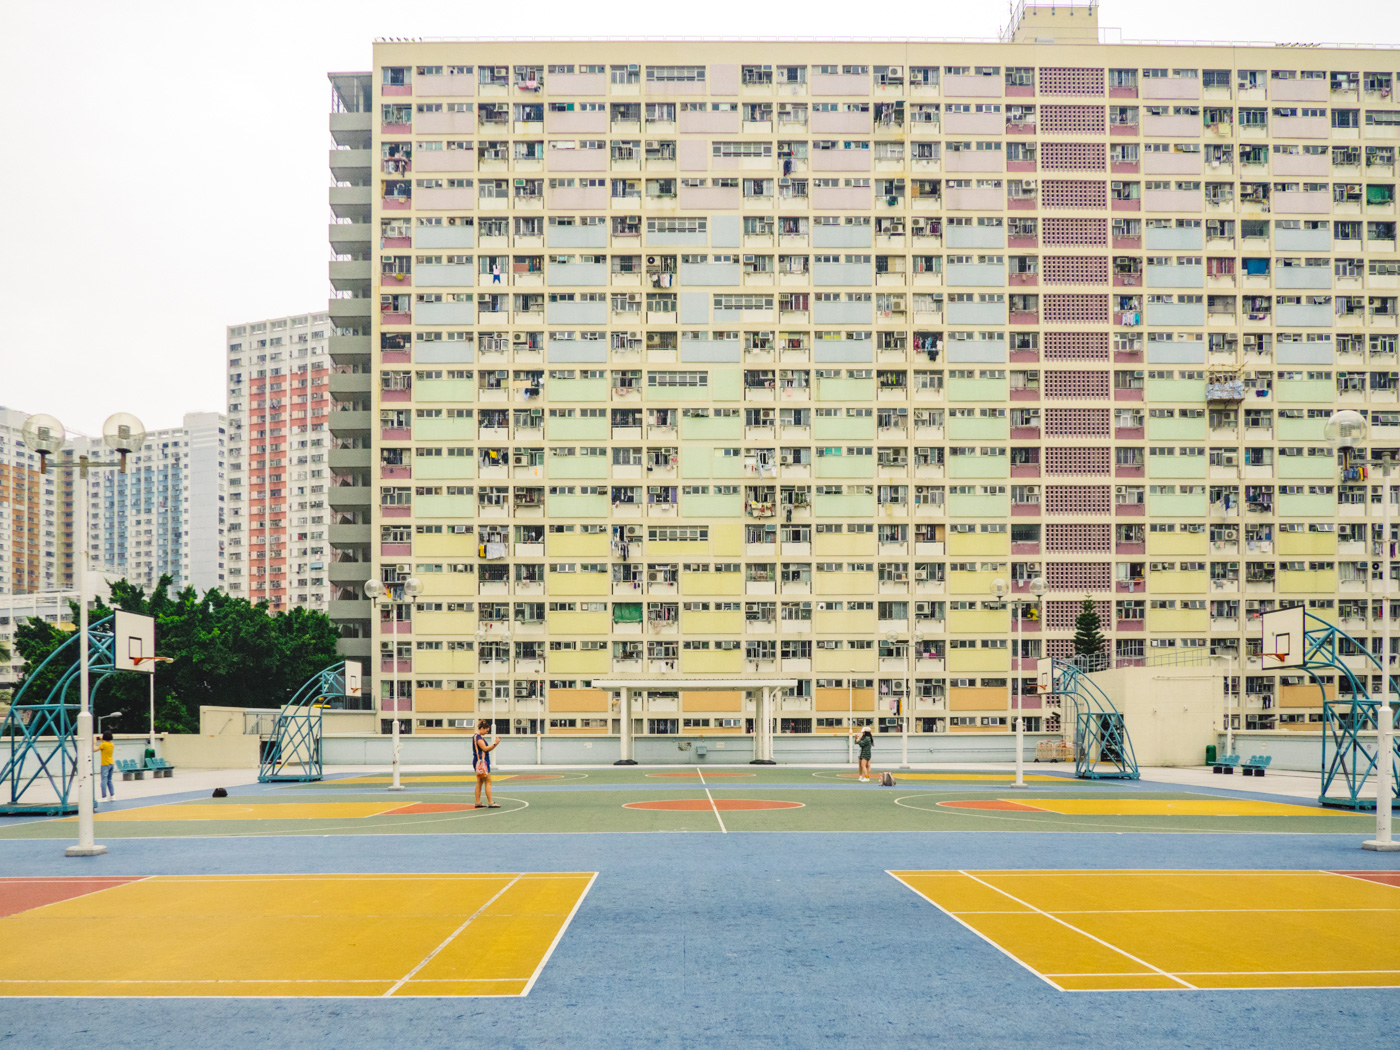 Hong Kong - Rainbow Estate - Basketball court full view